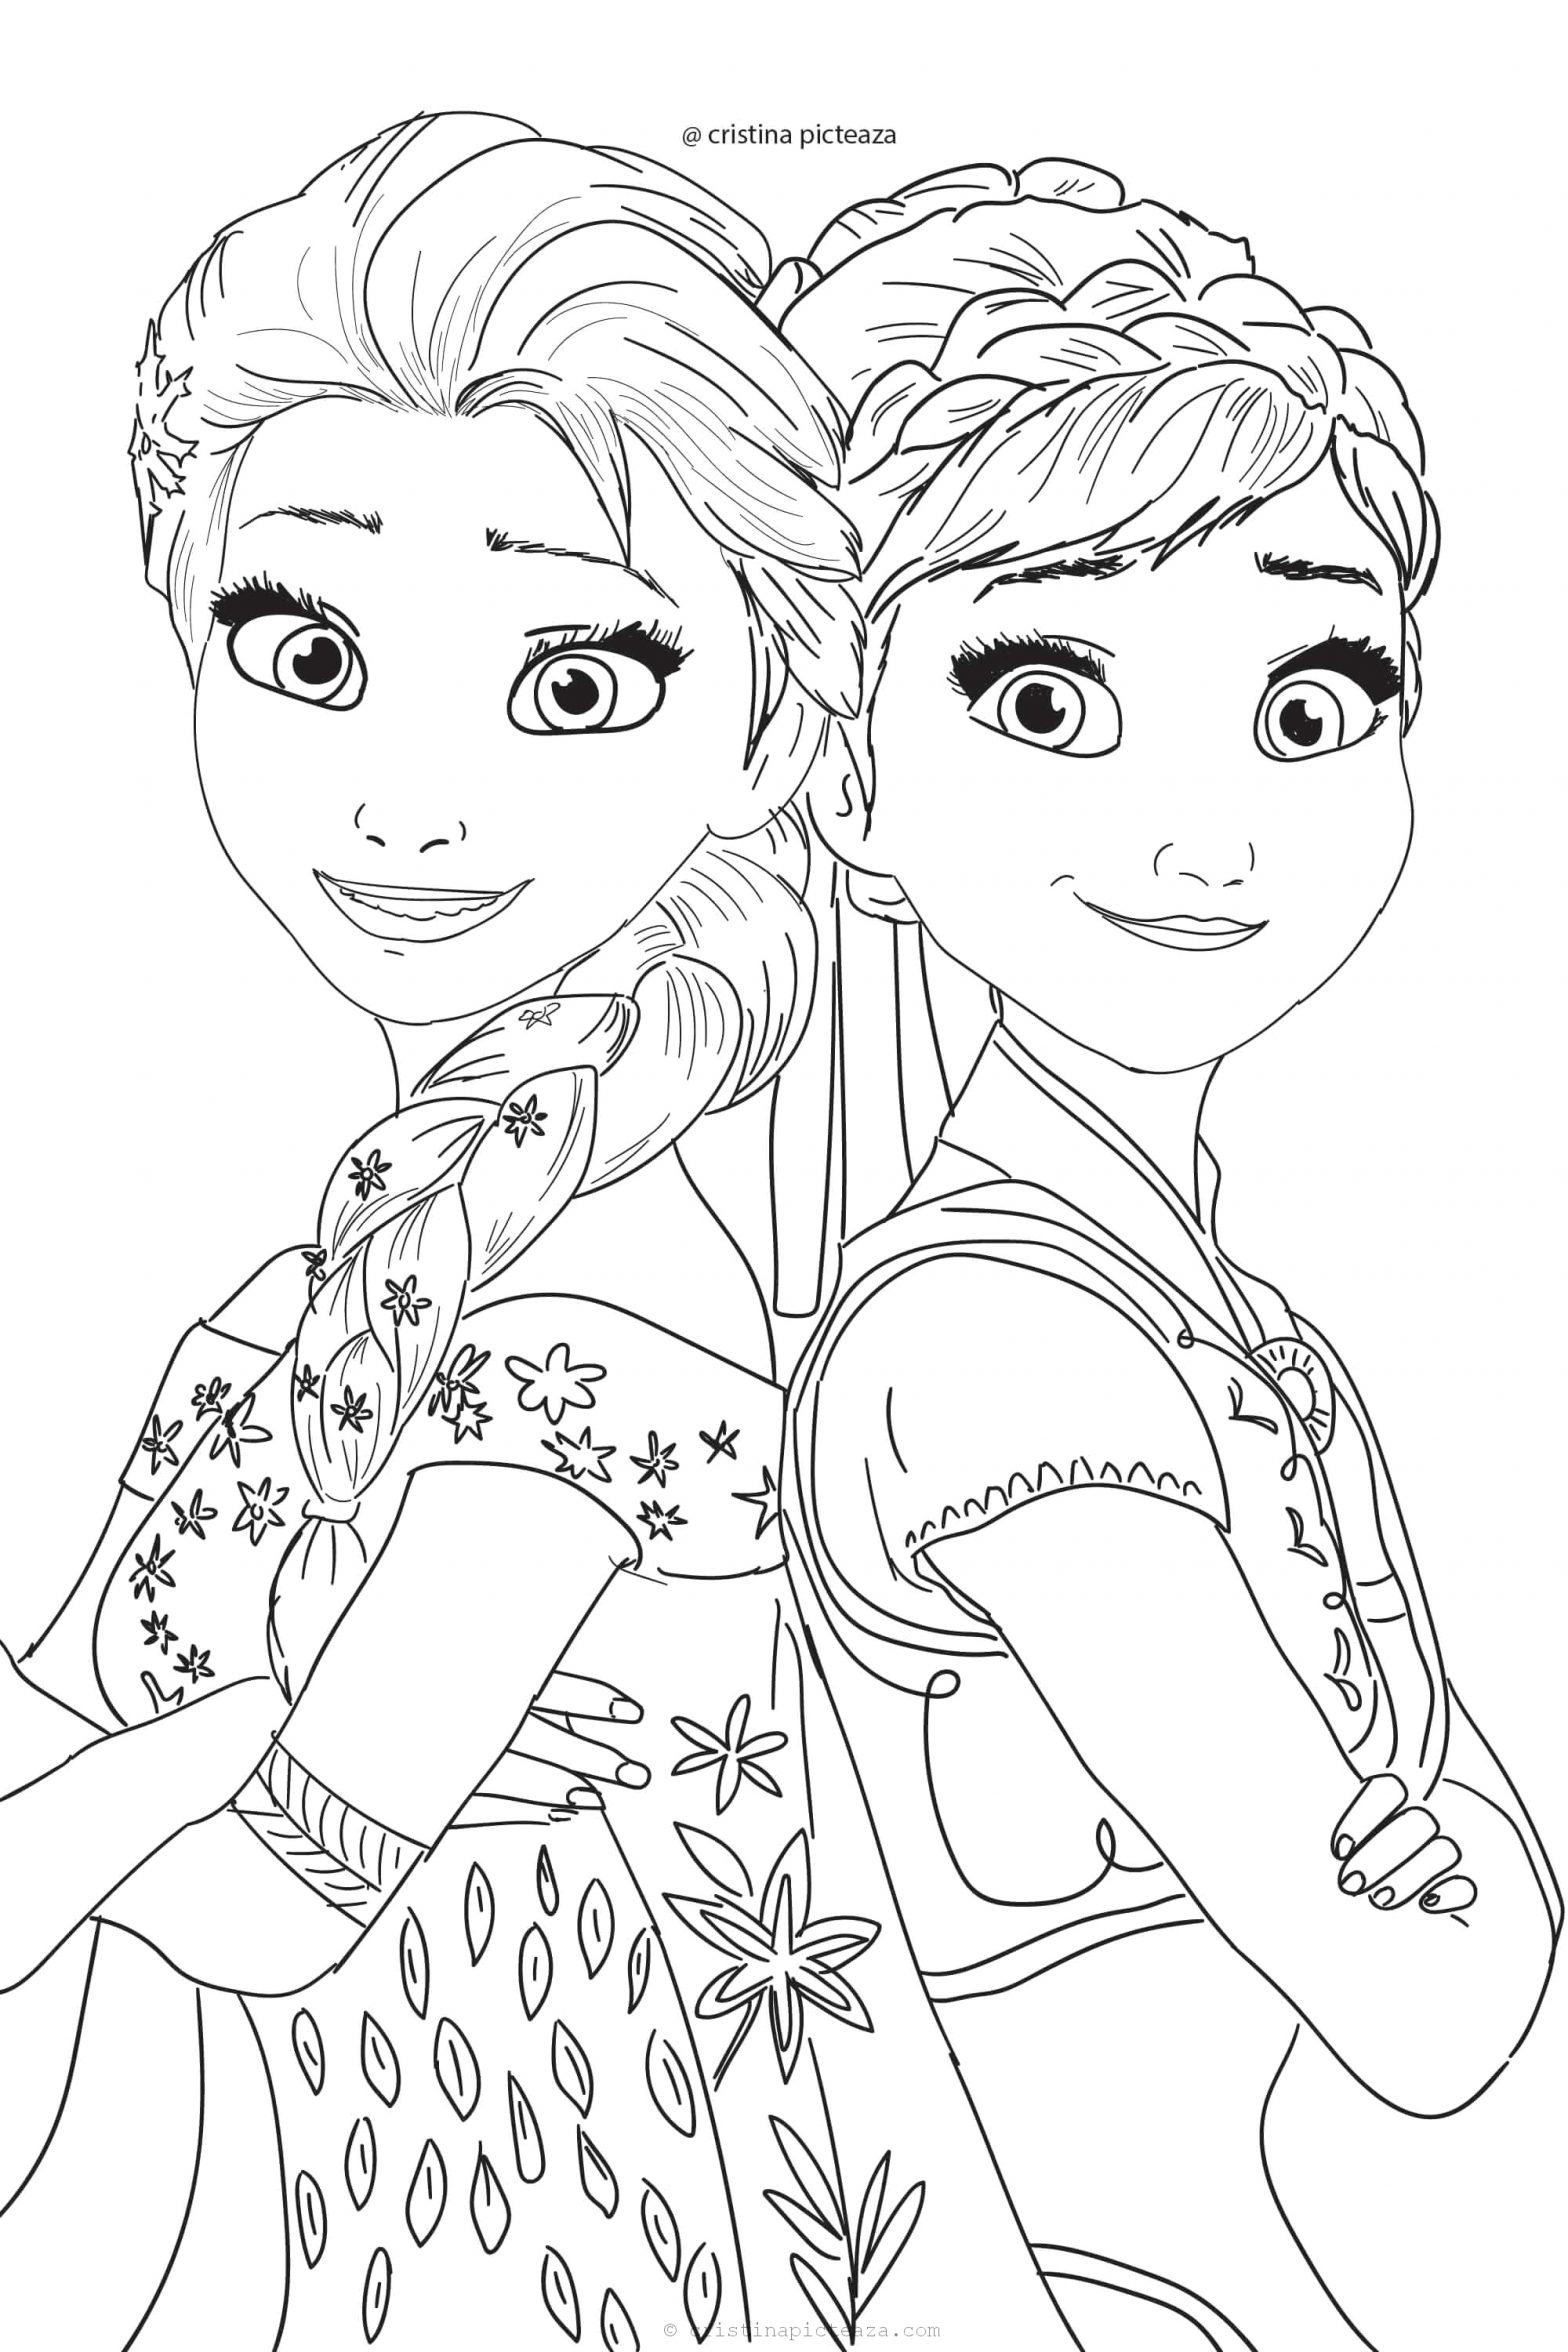 Anna and Elsa Frozen 2 Coloring Pages Frozen 2 Coloring Pages – Elsa and Anna Coloring